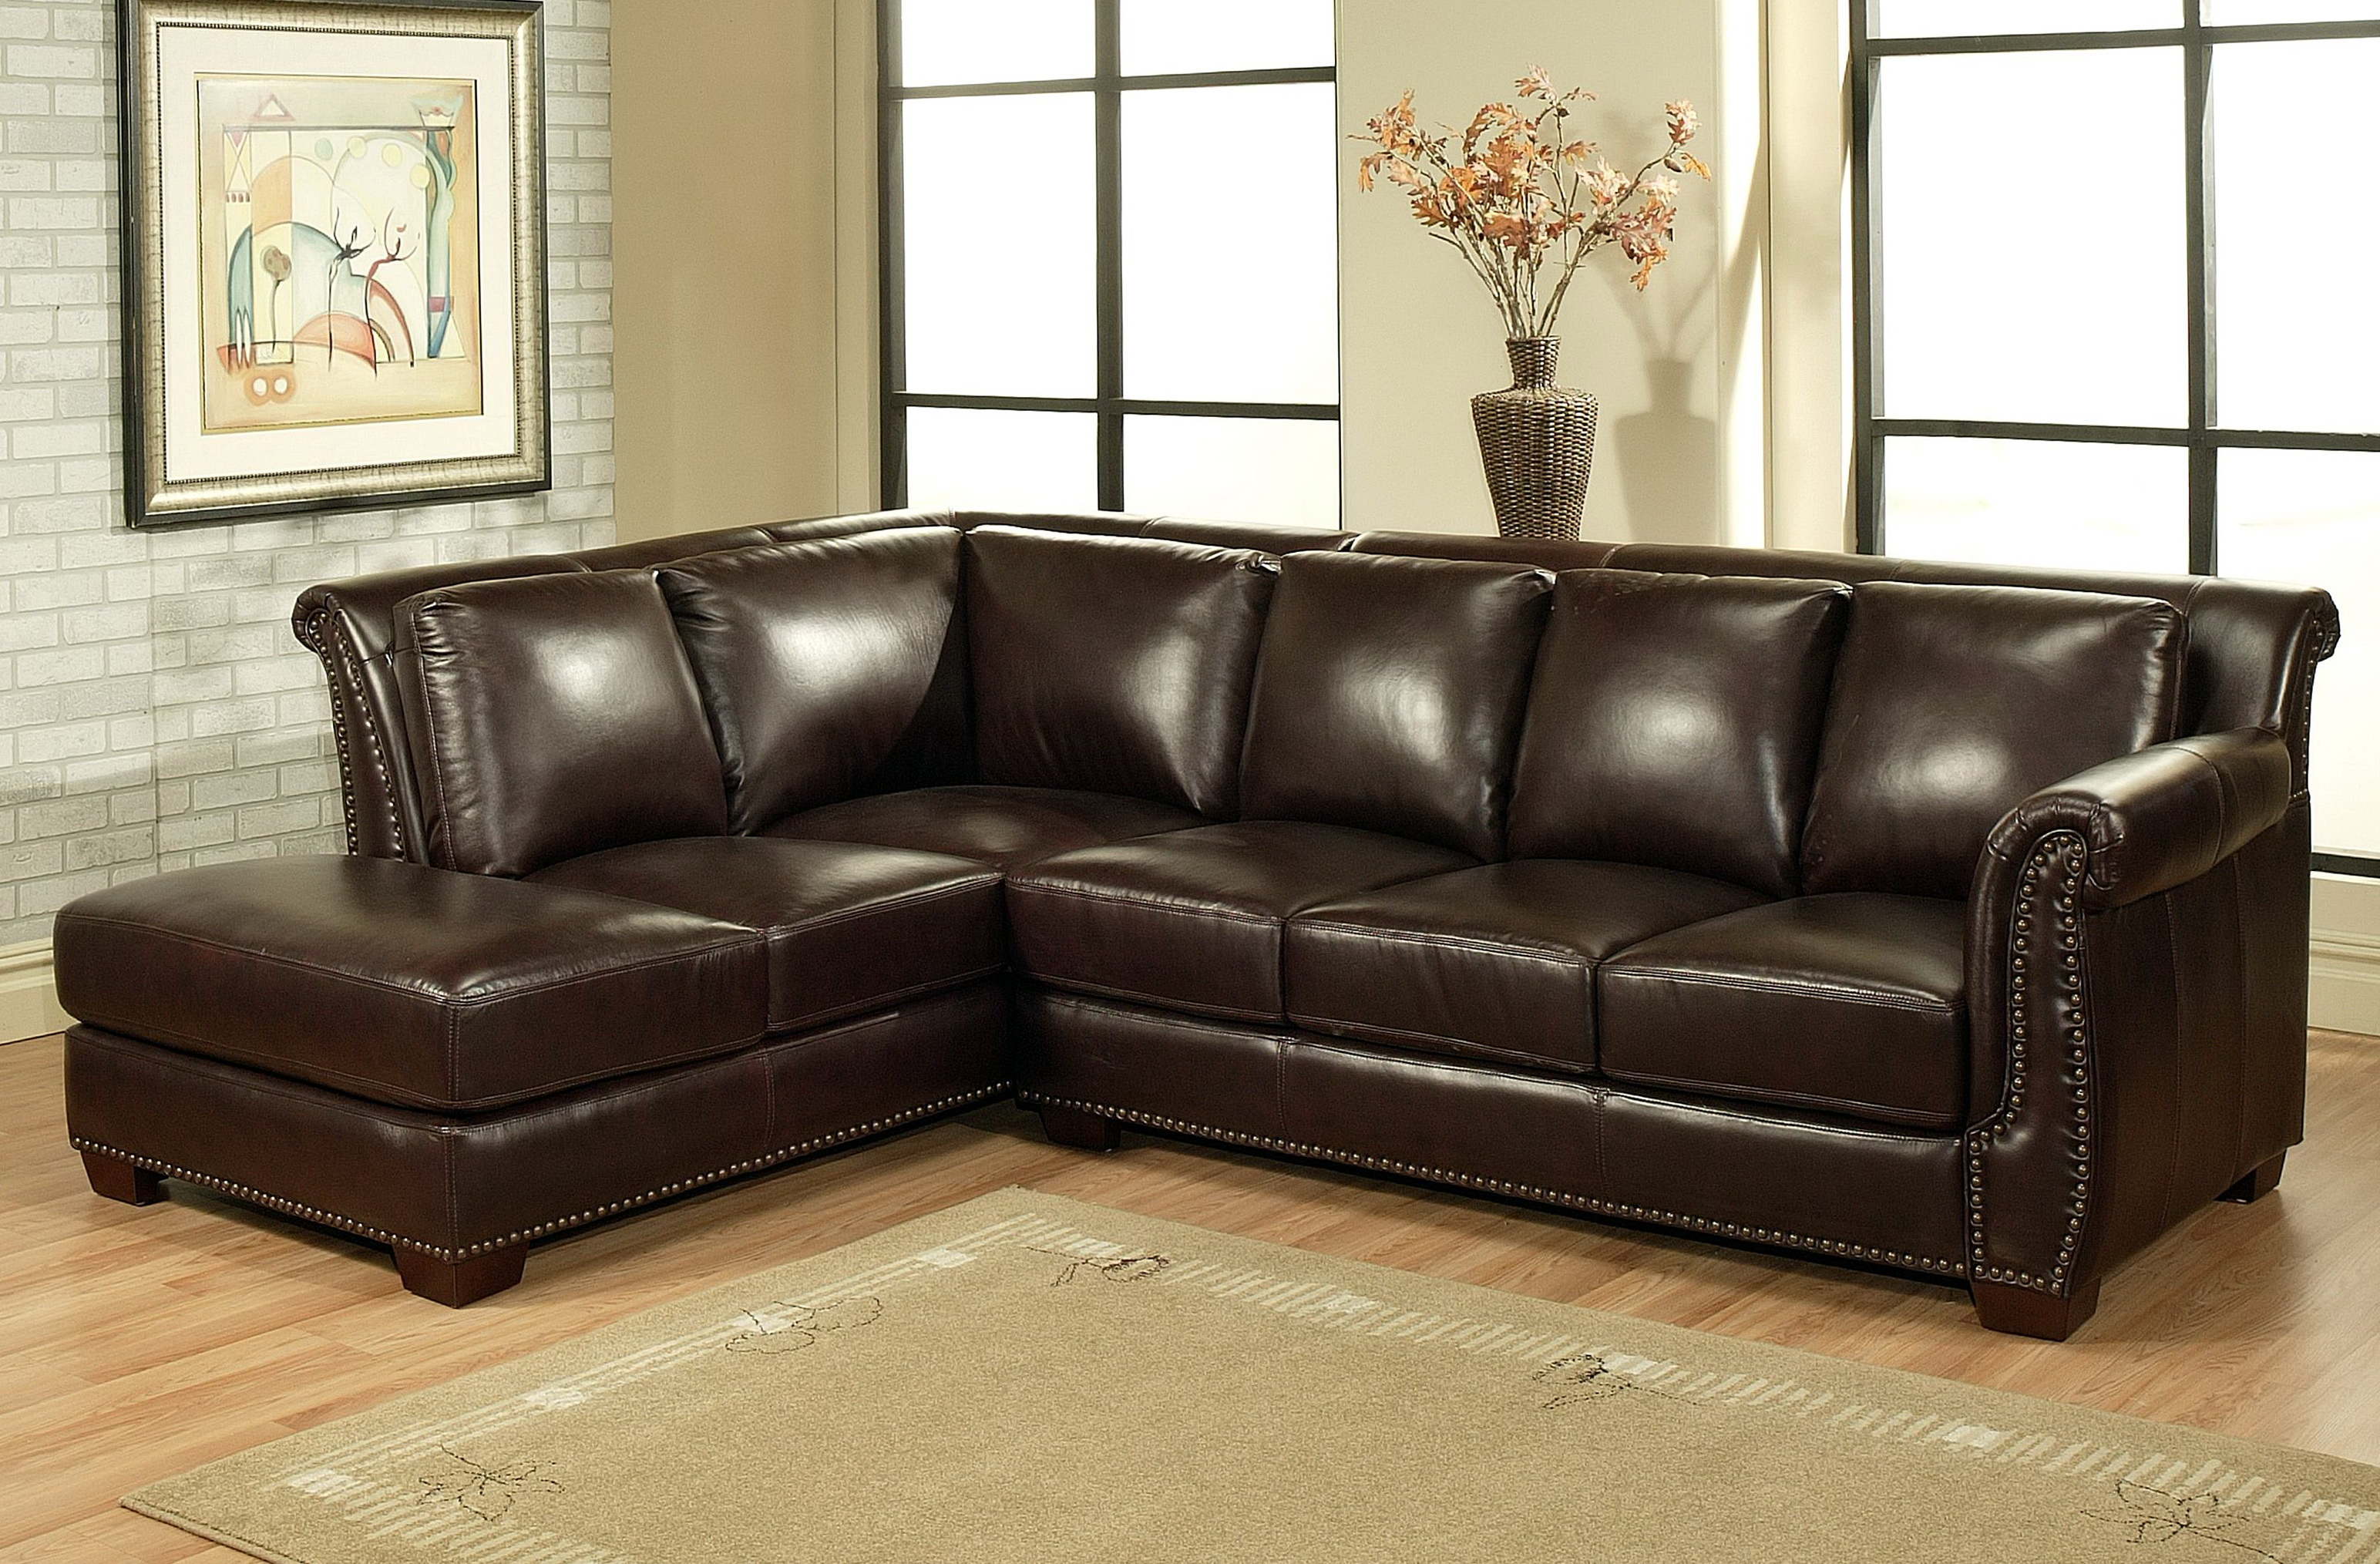 Large Sectional Sofas Canada Sofa 9730 Home Design Ideas